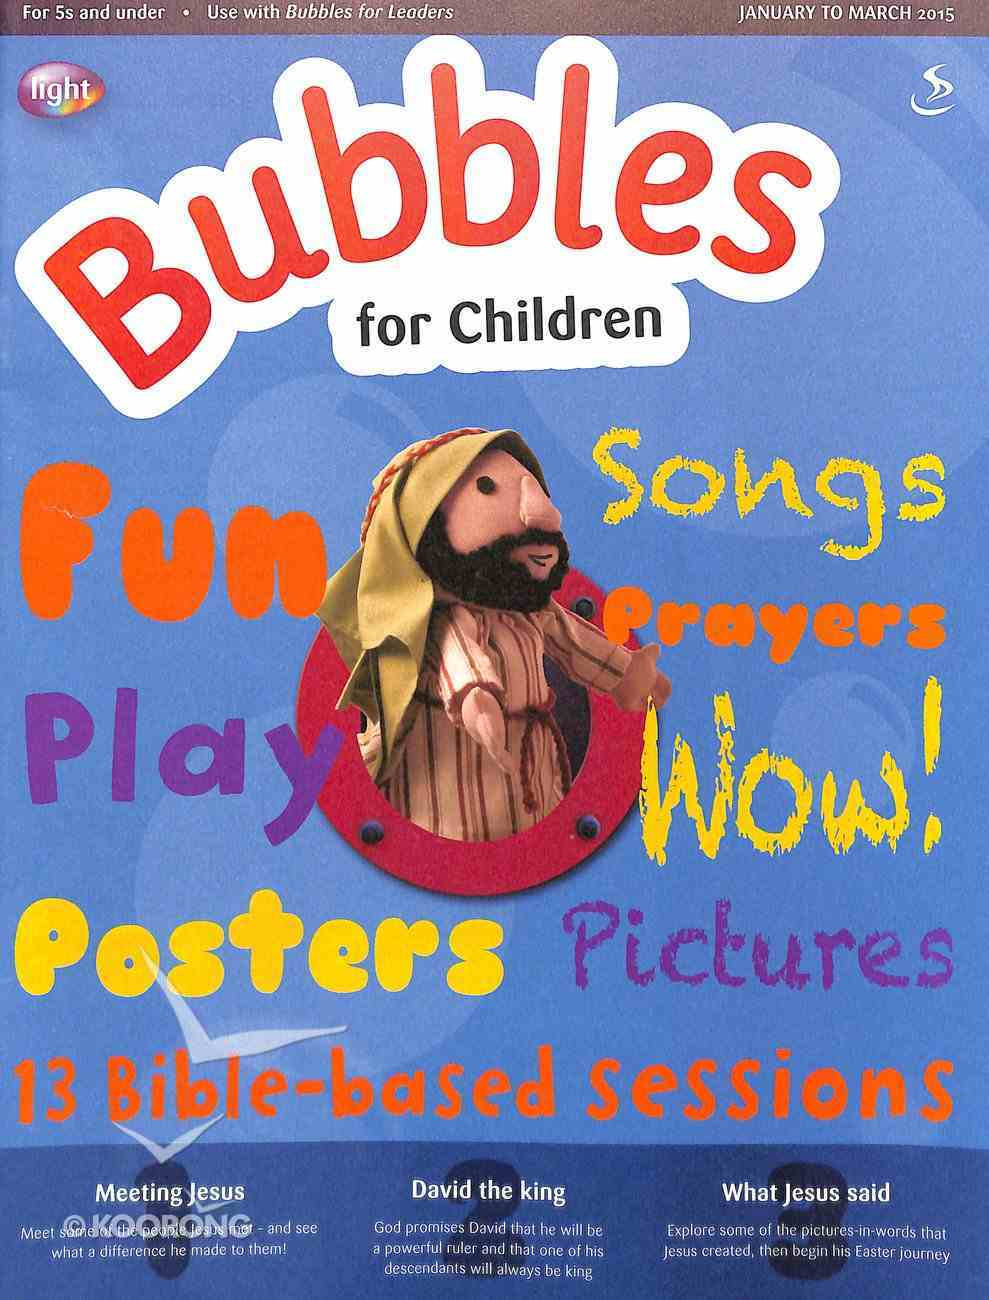 Light: Bubbles 2015 #01: Jan-Mar Student's Guide (5 And Under) Paperback